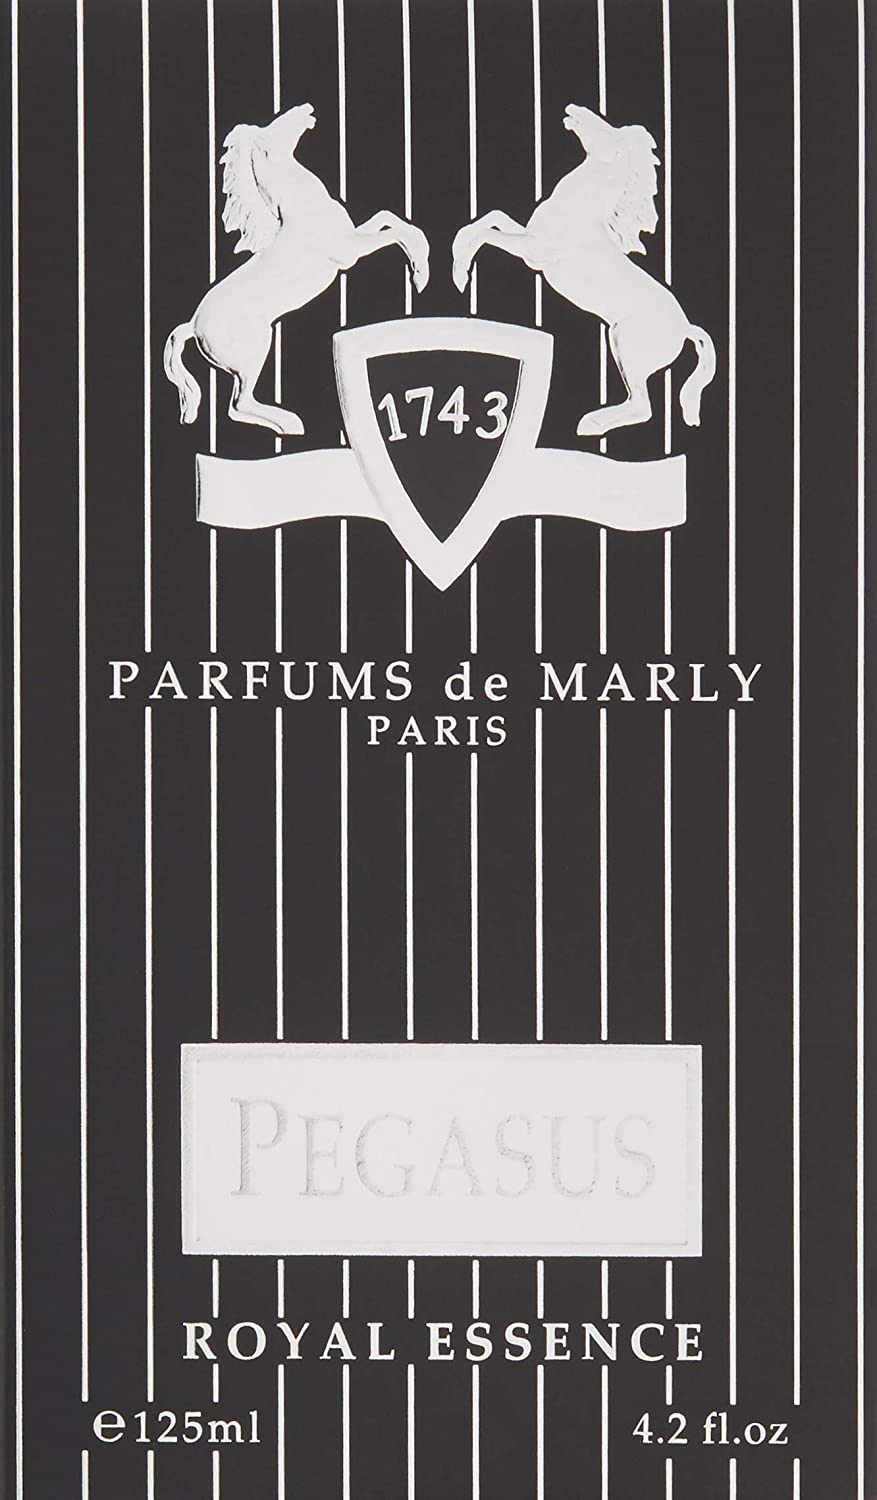 PARFUMS DE MARLY Pegasus Men s Edp Spray